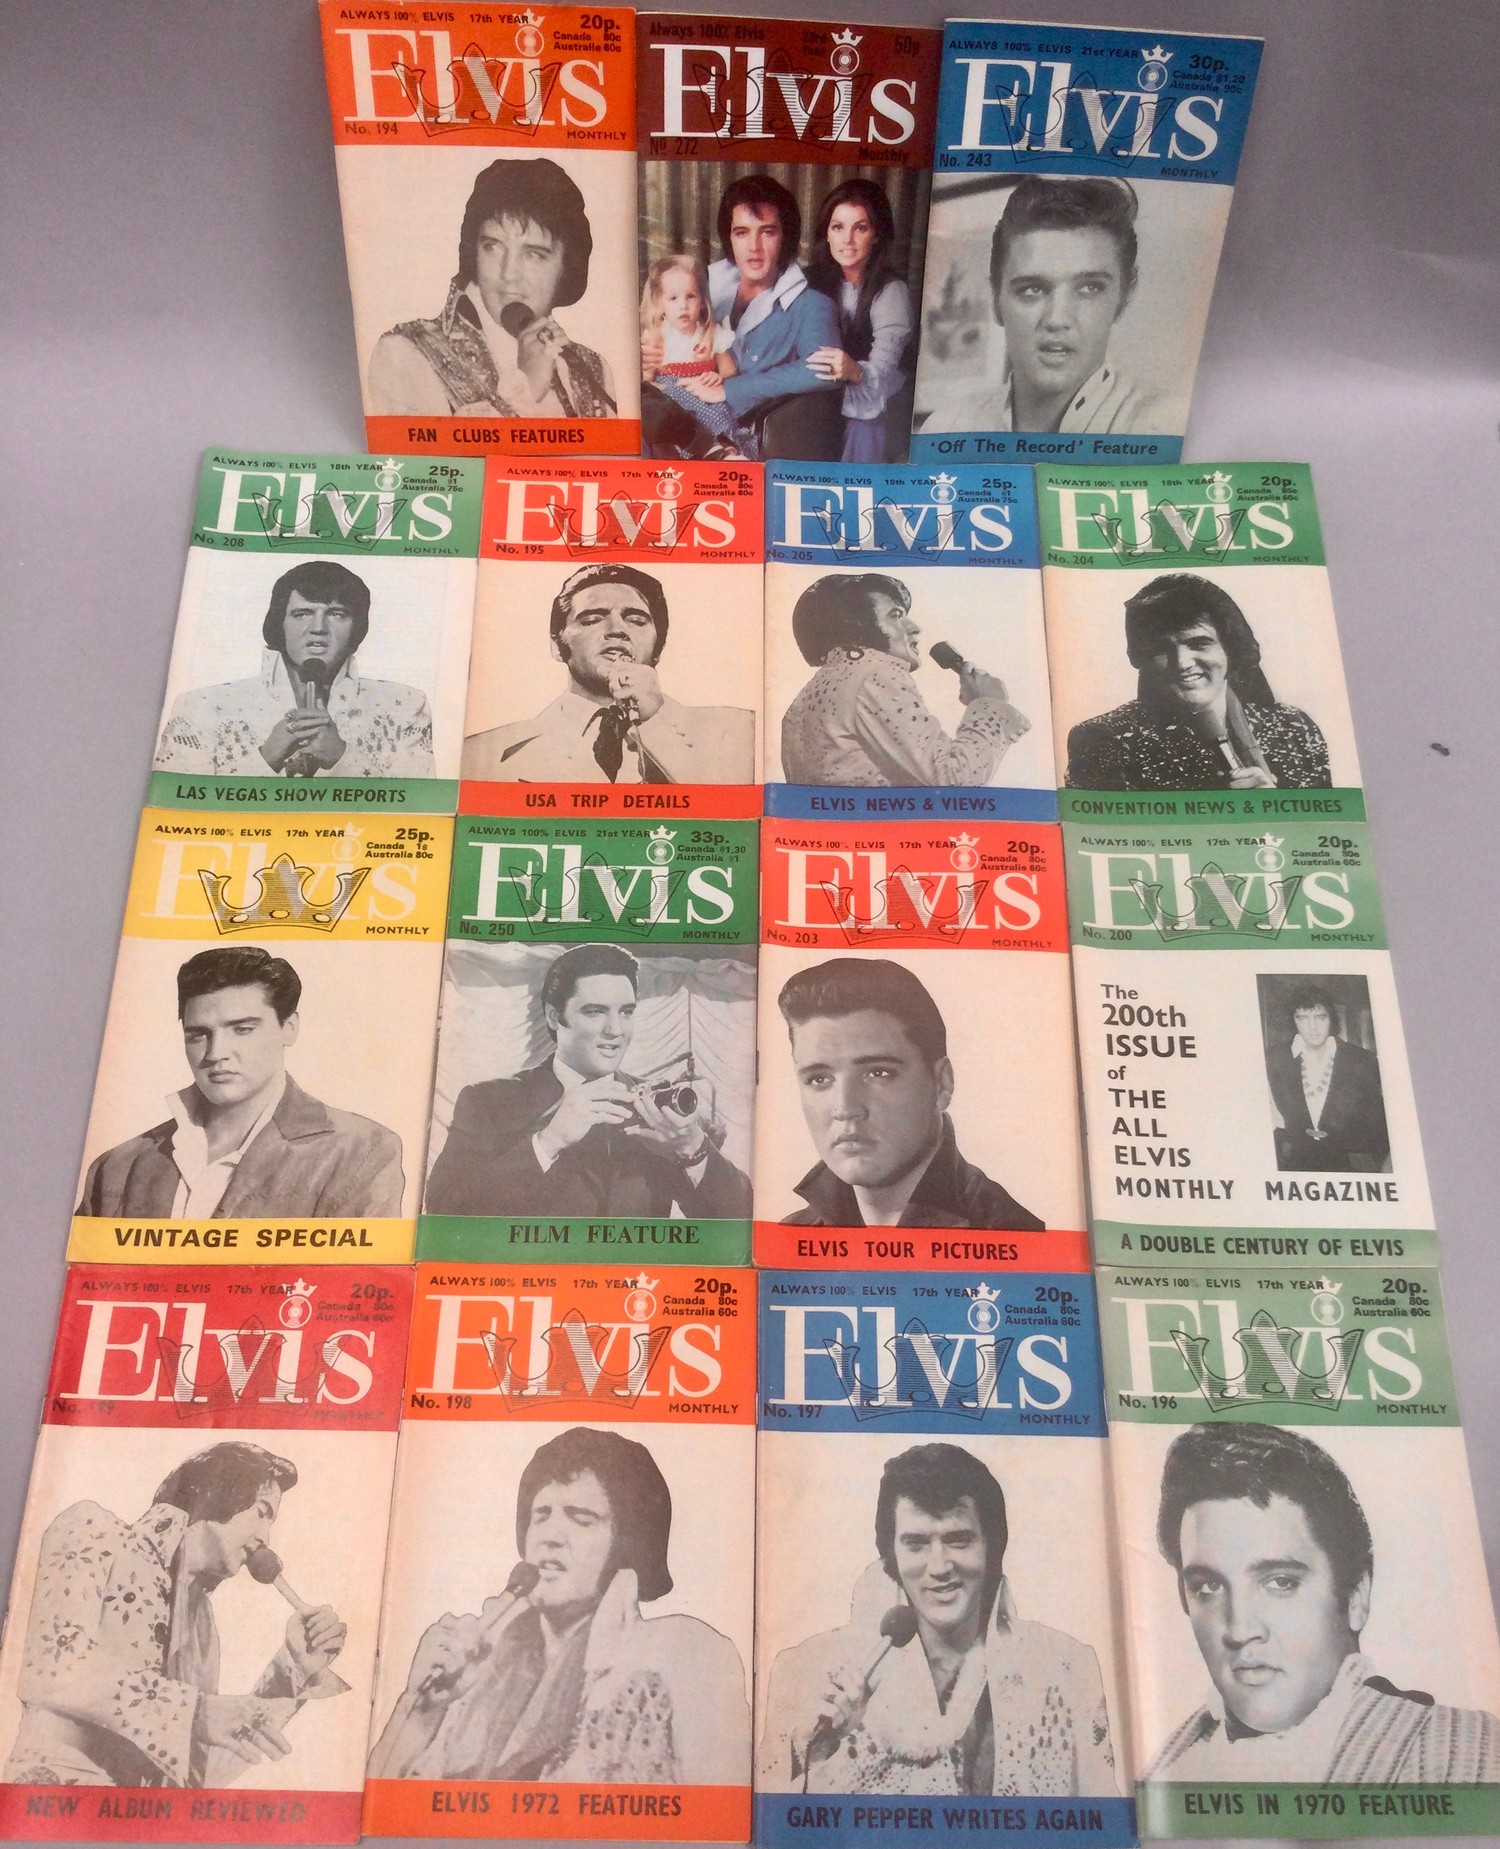 ELVIS PRESLEY COLLECTION OF FAN MAGAZINES. 13 copies of Elvis Mail mags - 27 copies of Elvis - Image 2 of 4